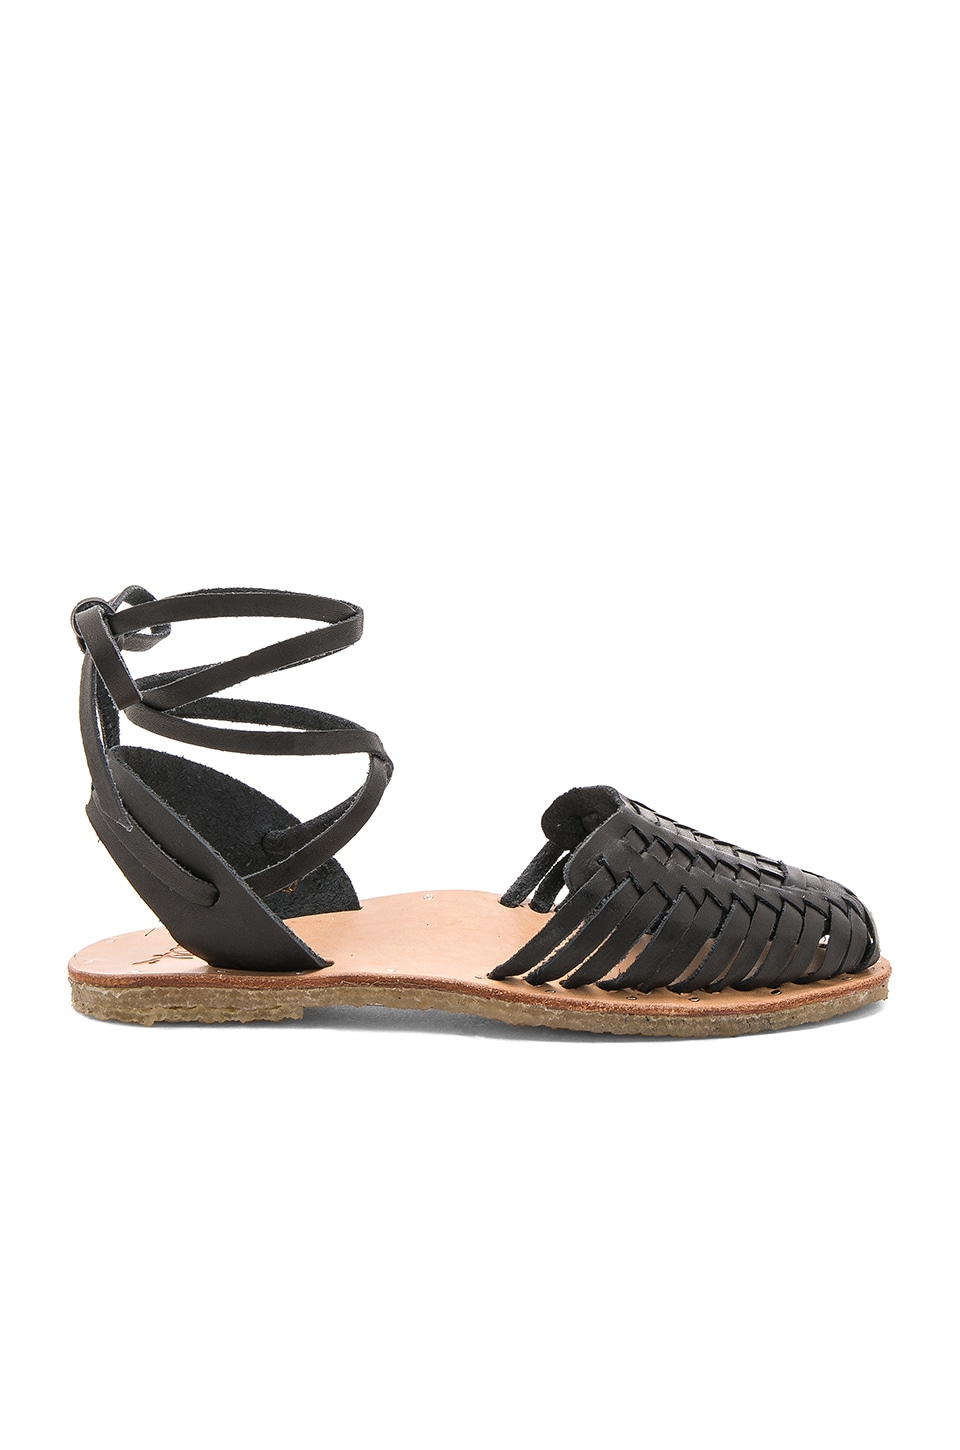 Beek The Parakeet Sandal in Black & Natural